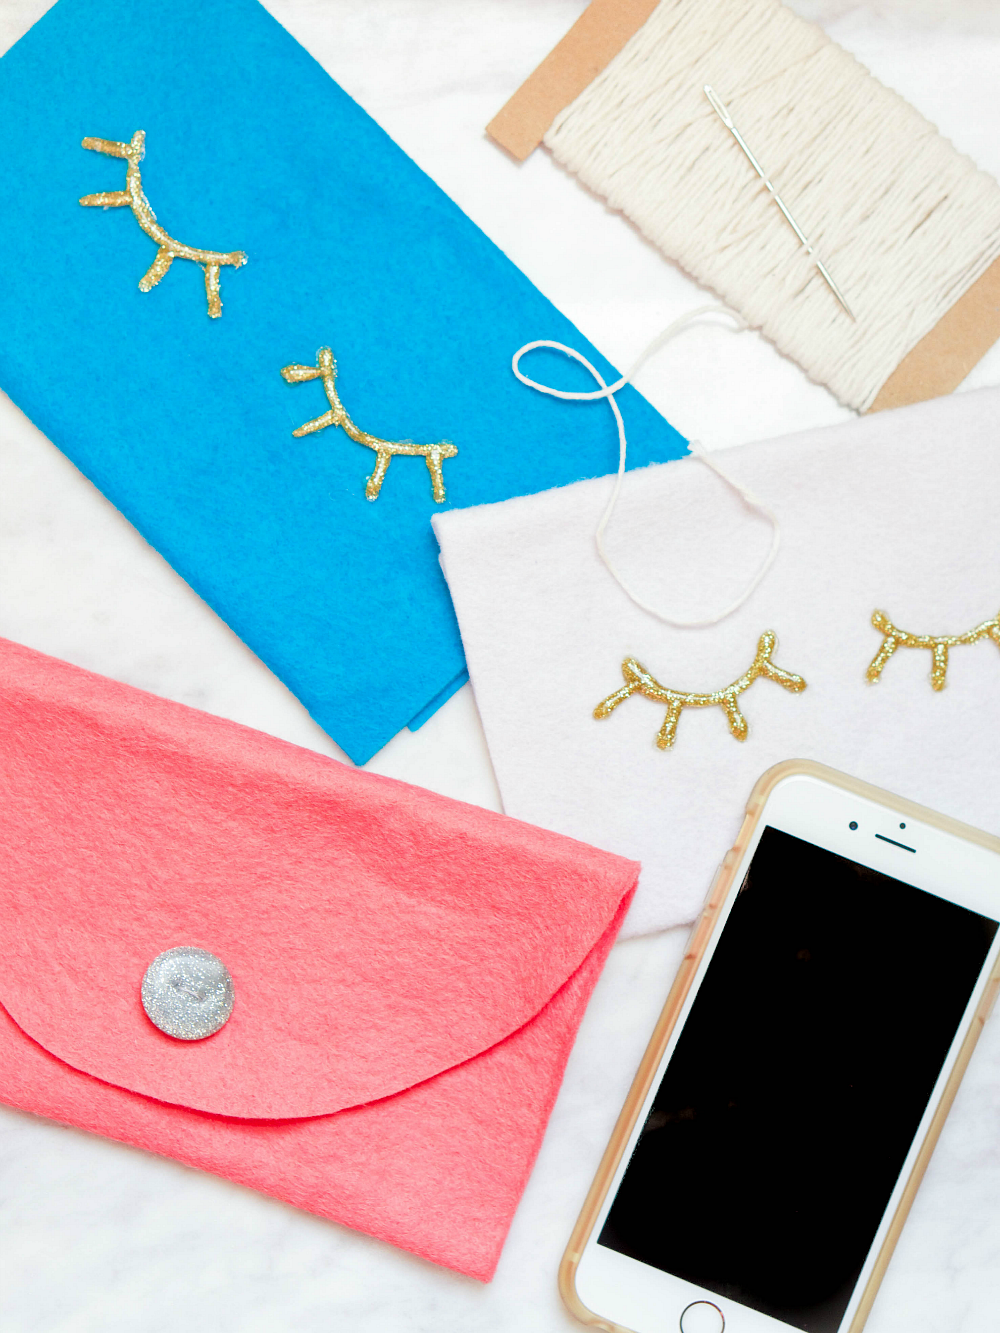 How to Make an iPhone Case Using Hot Glue